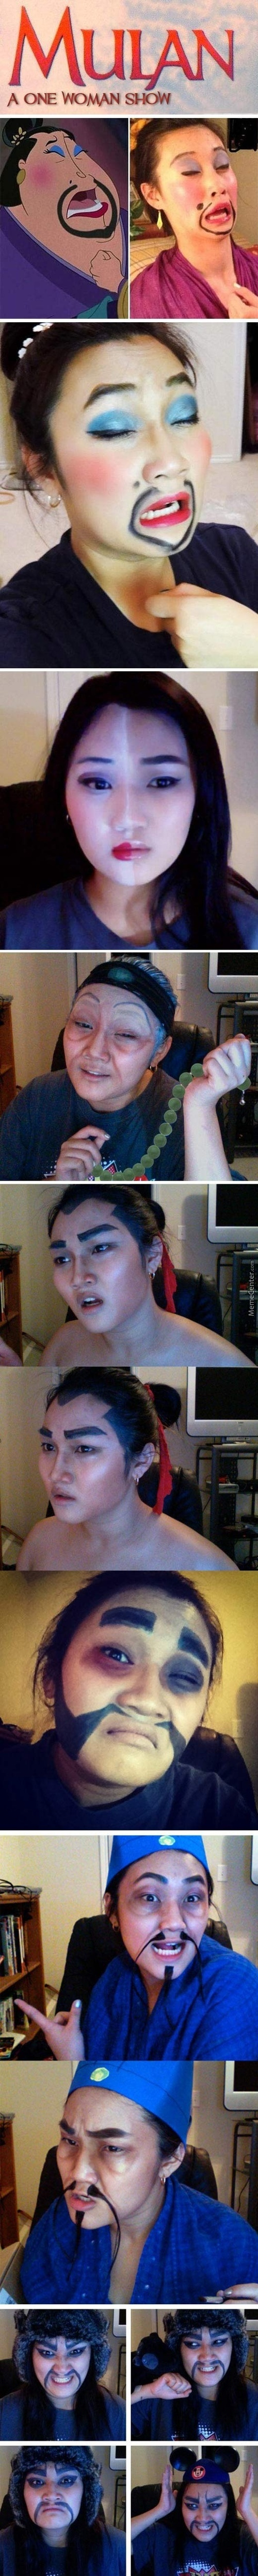 Mulan And The Wonders Of Makeup